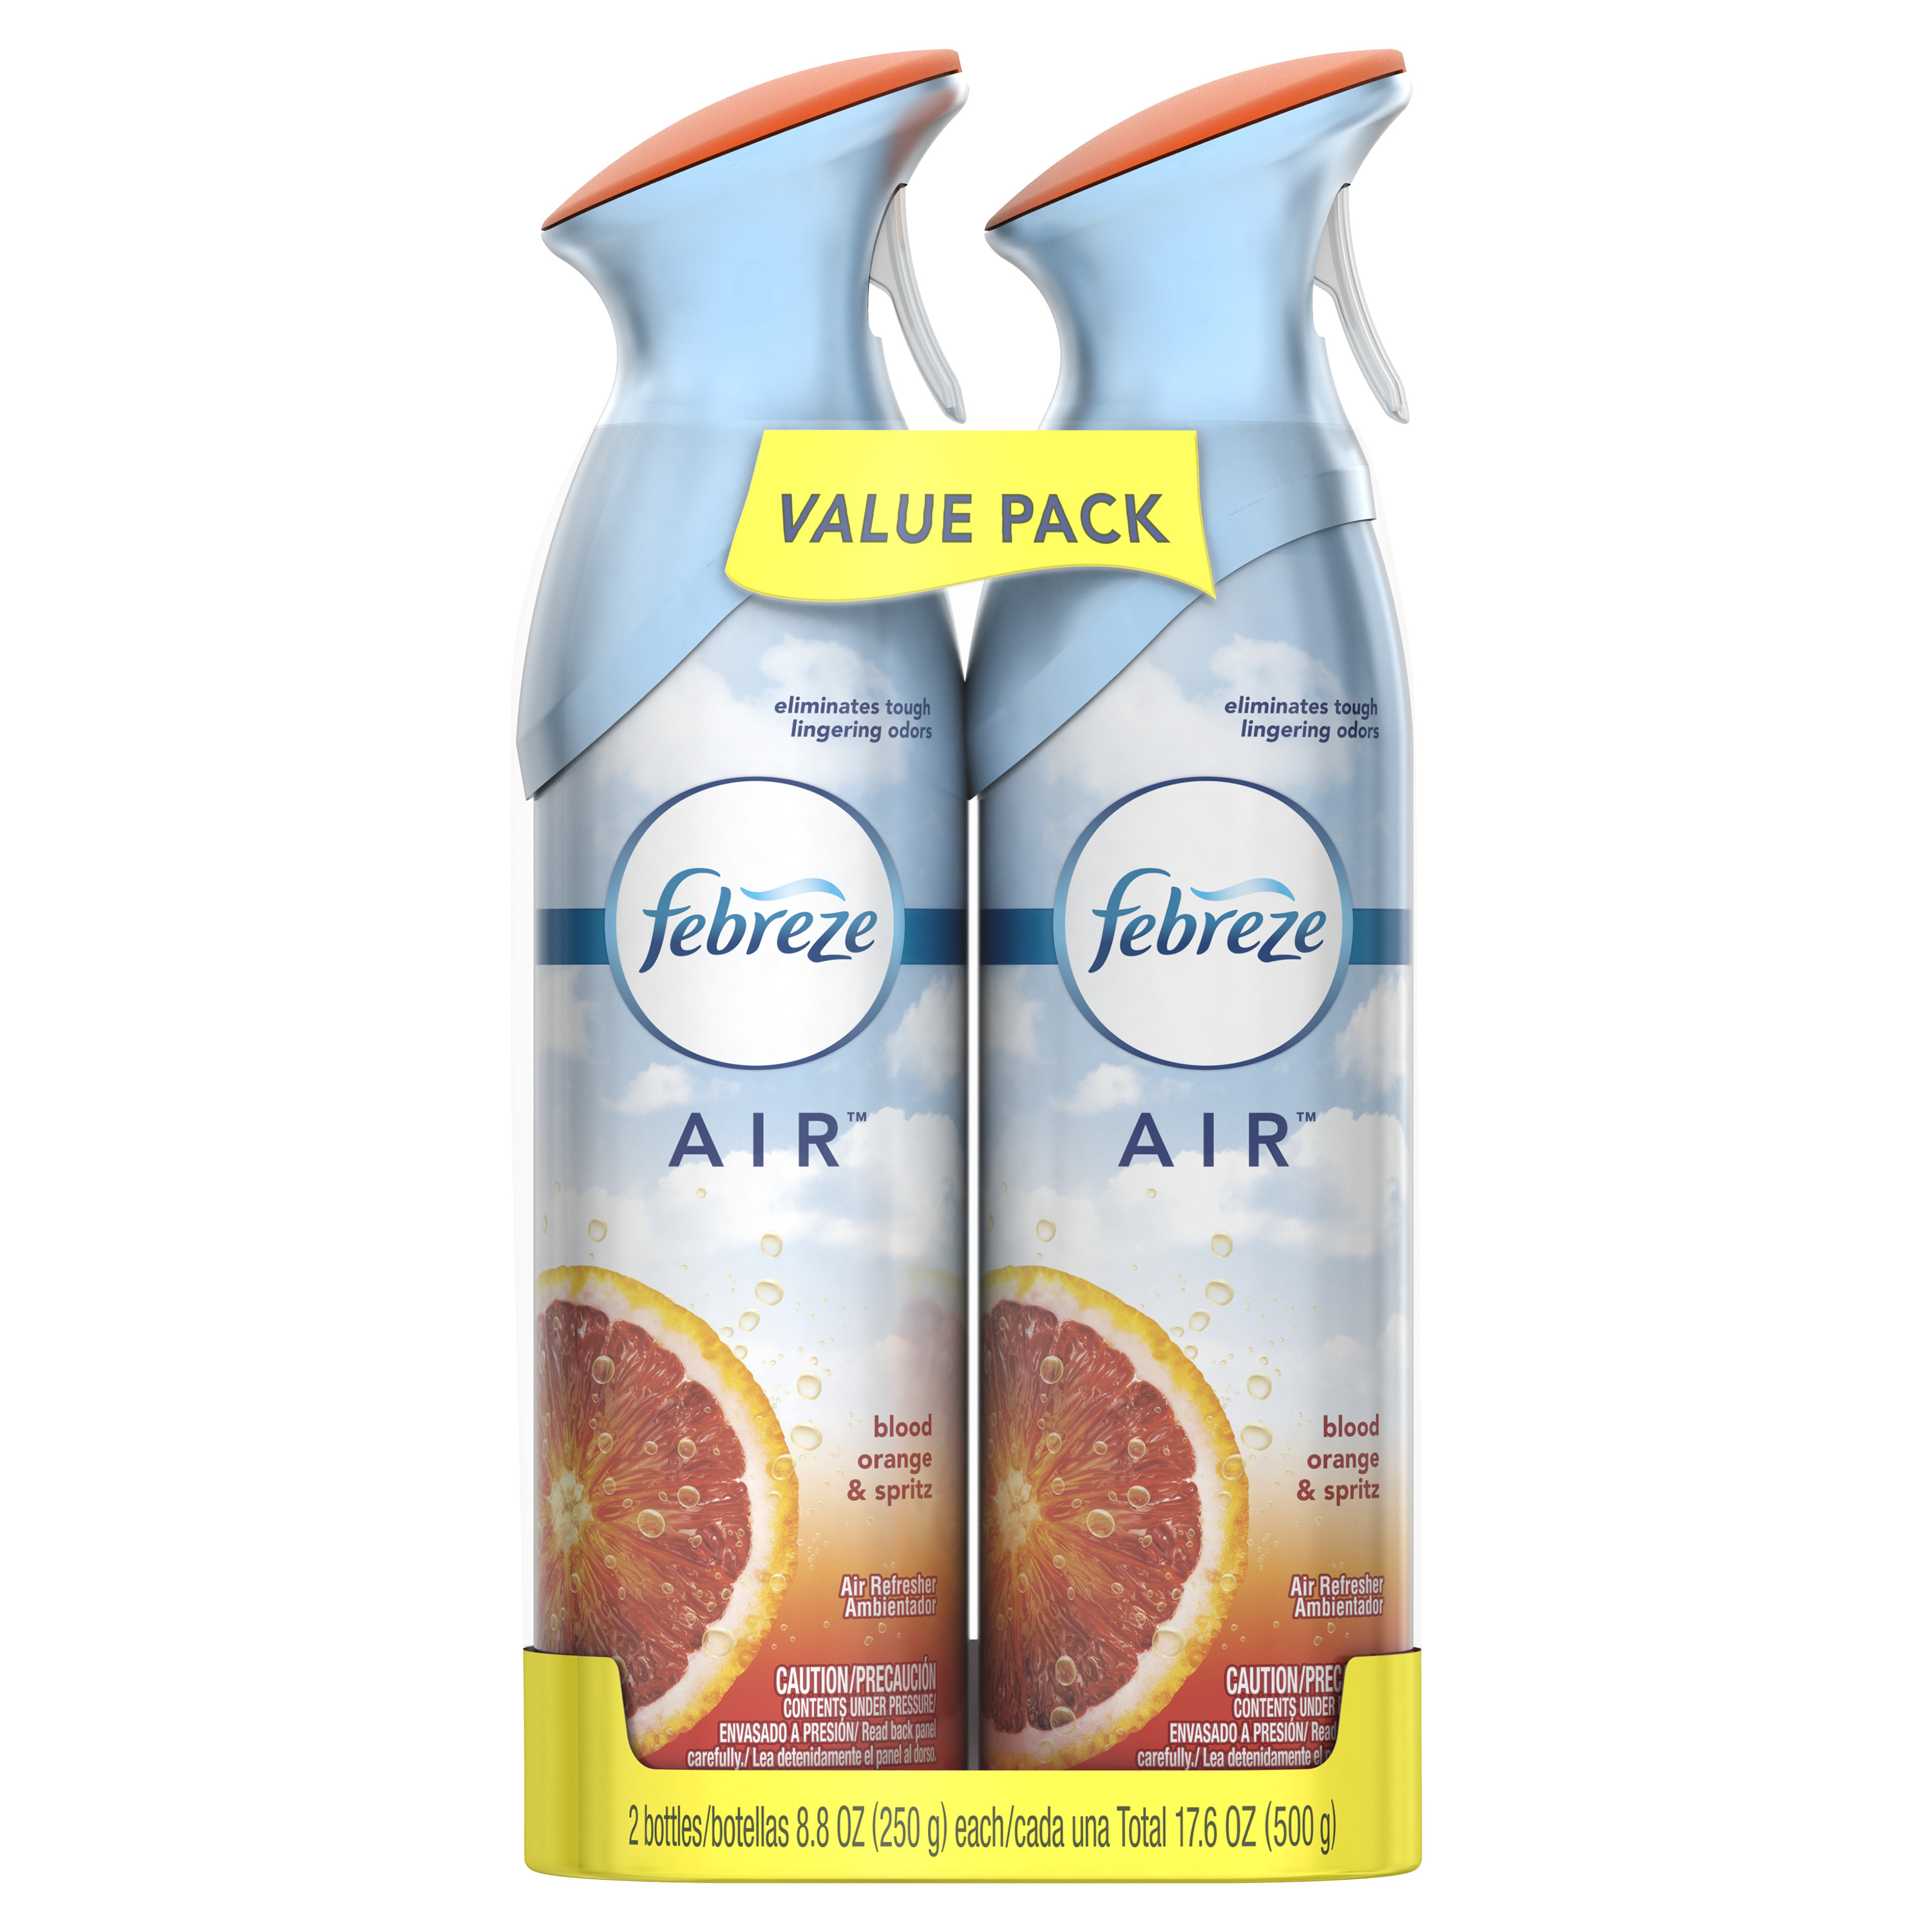 Febreze Air Freshener Value Pack, Blood Orange & Spritz, 2 count, 8.8 oz each